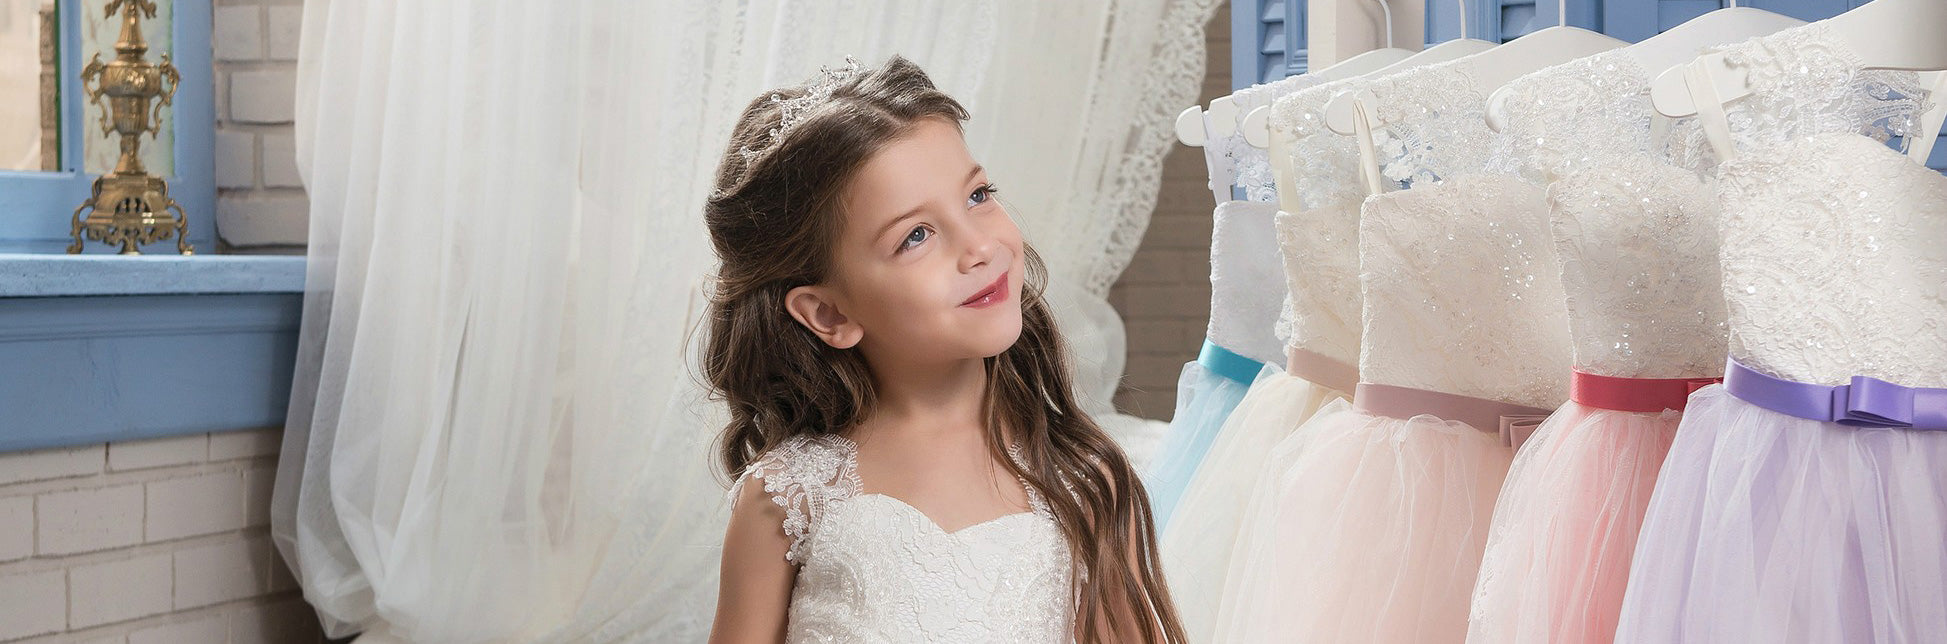 f38f79853fa Believe in Your Dreams! Mia Bambina Dress Boutique for girls enriches every  little Miss s desire to play and dream.